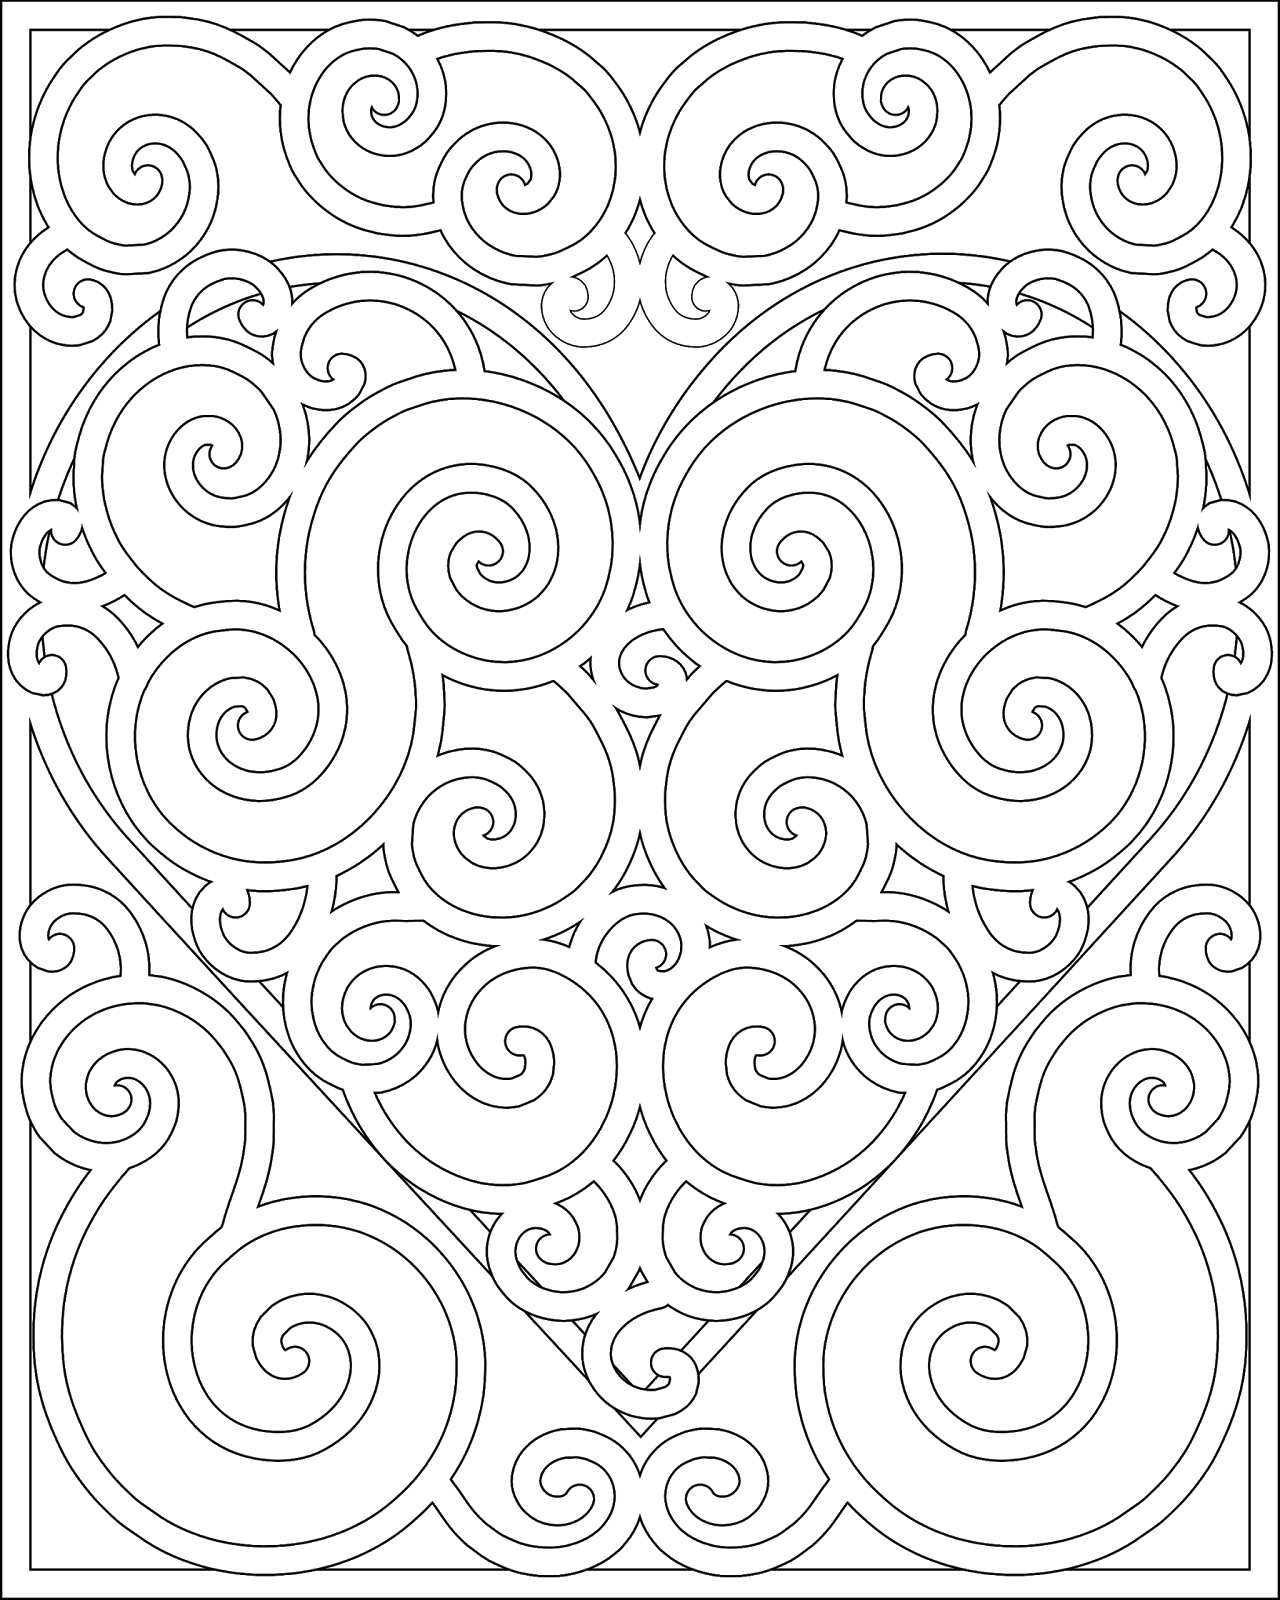 pattern coloring books craftdrawer crafts creative cats coloring book not just coloring pattern books